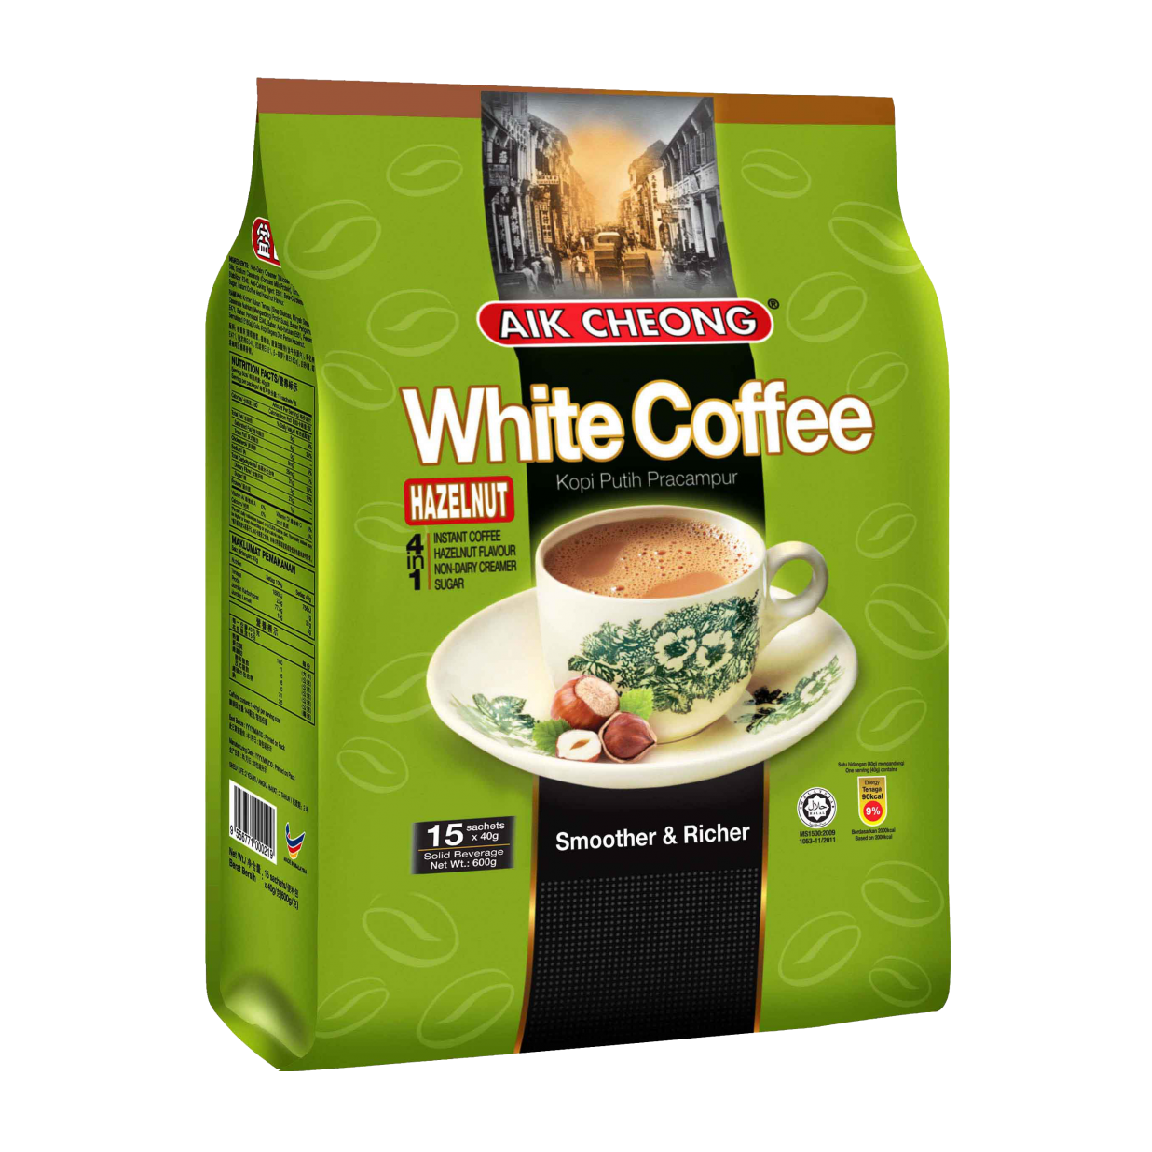 Cafe Aik Cheong White Coffee Hazenut 4in1 40g*15